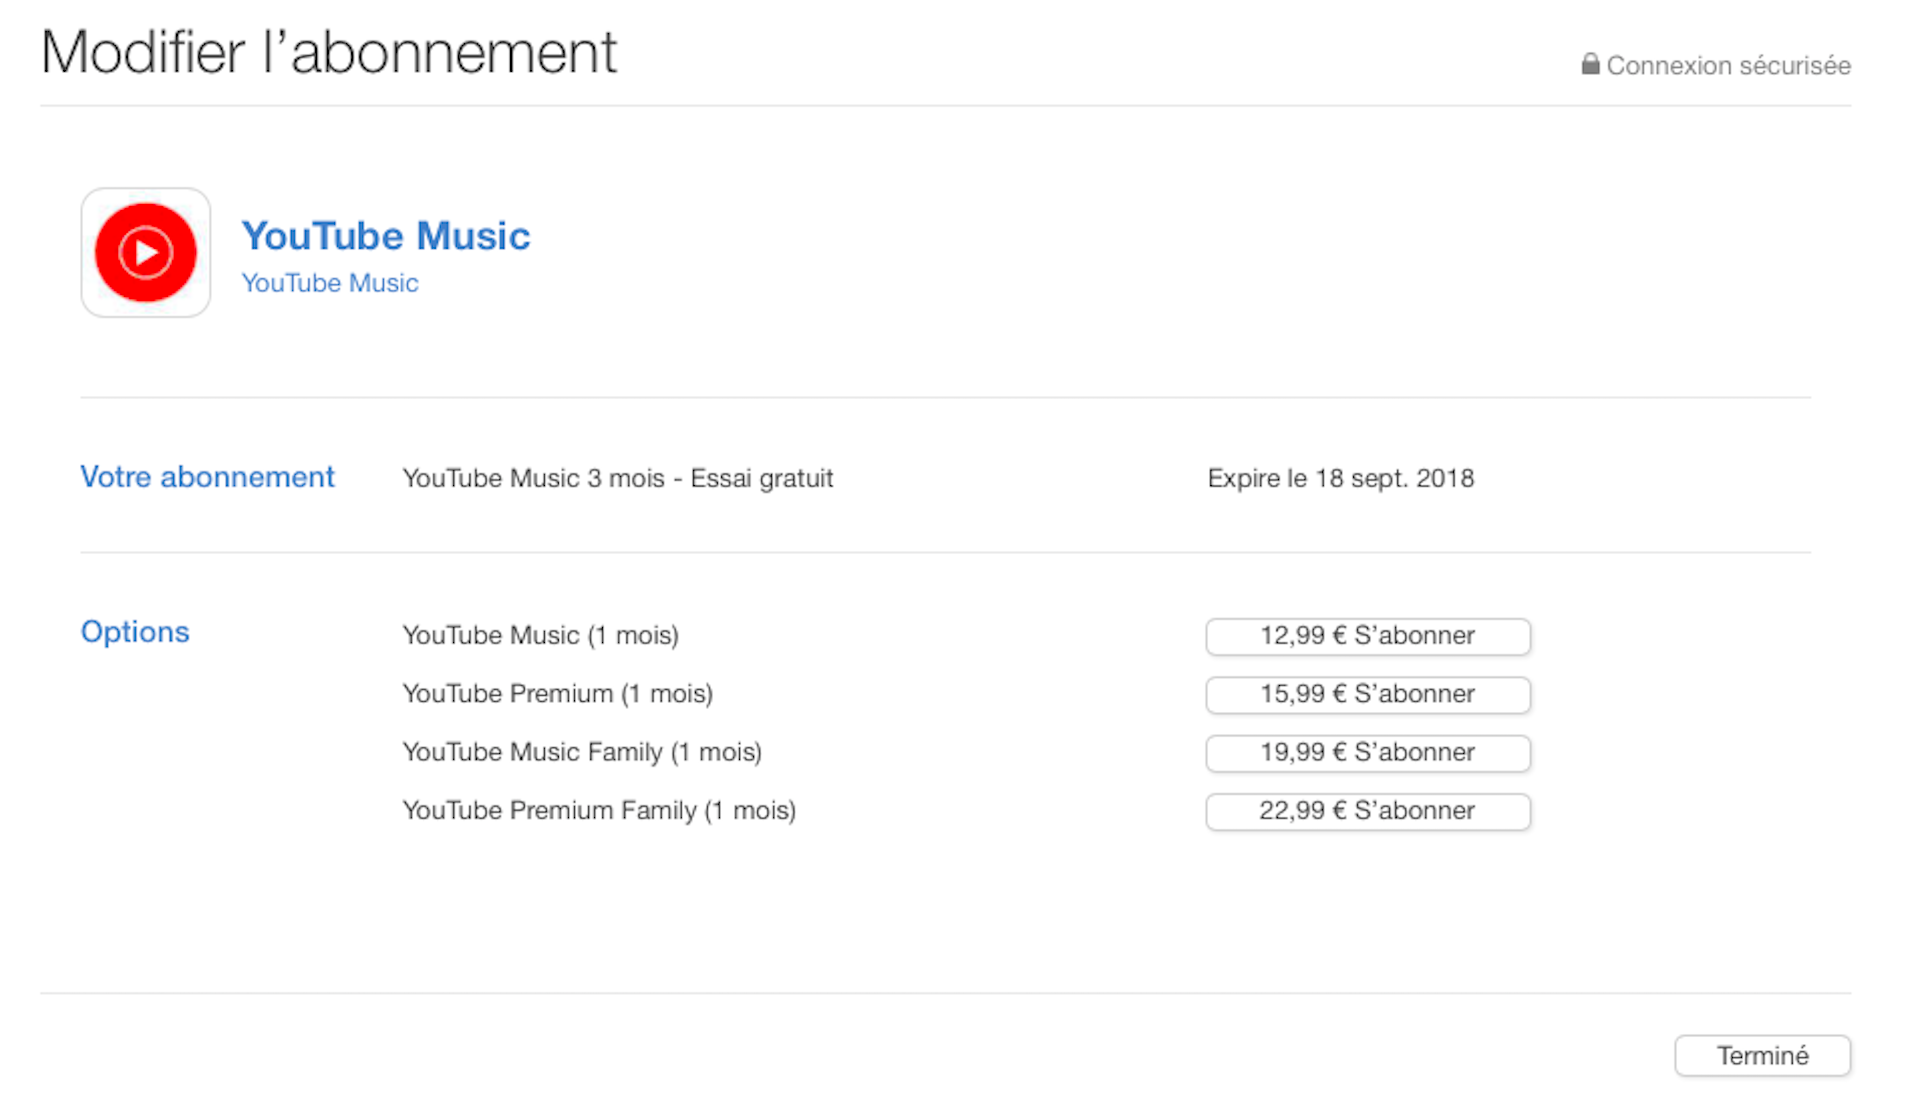 Youtube (Music) Premium arrive en France pour concurrencer Apple et Amazon